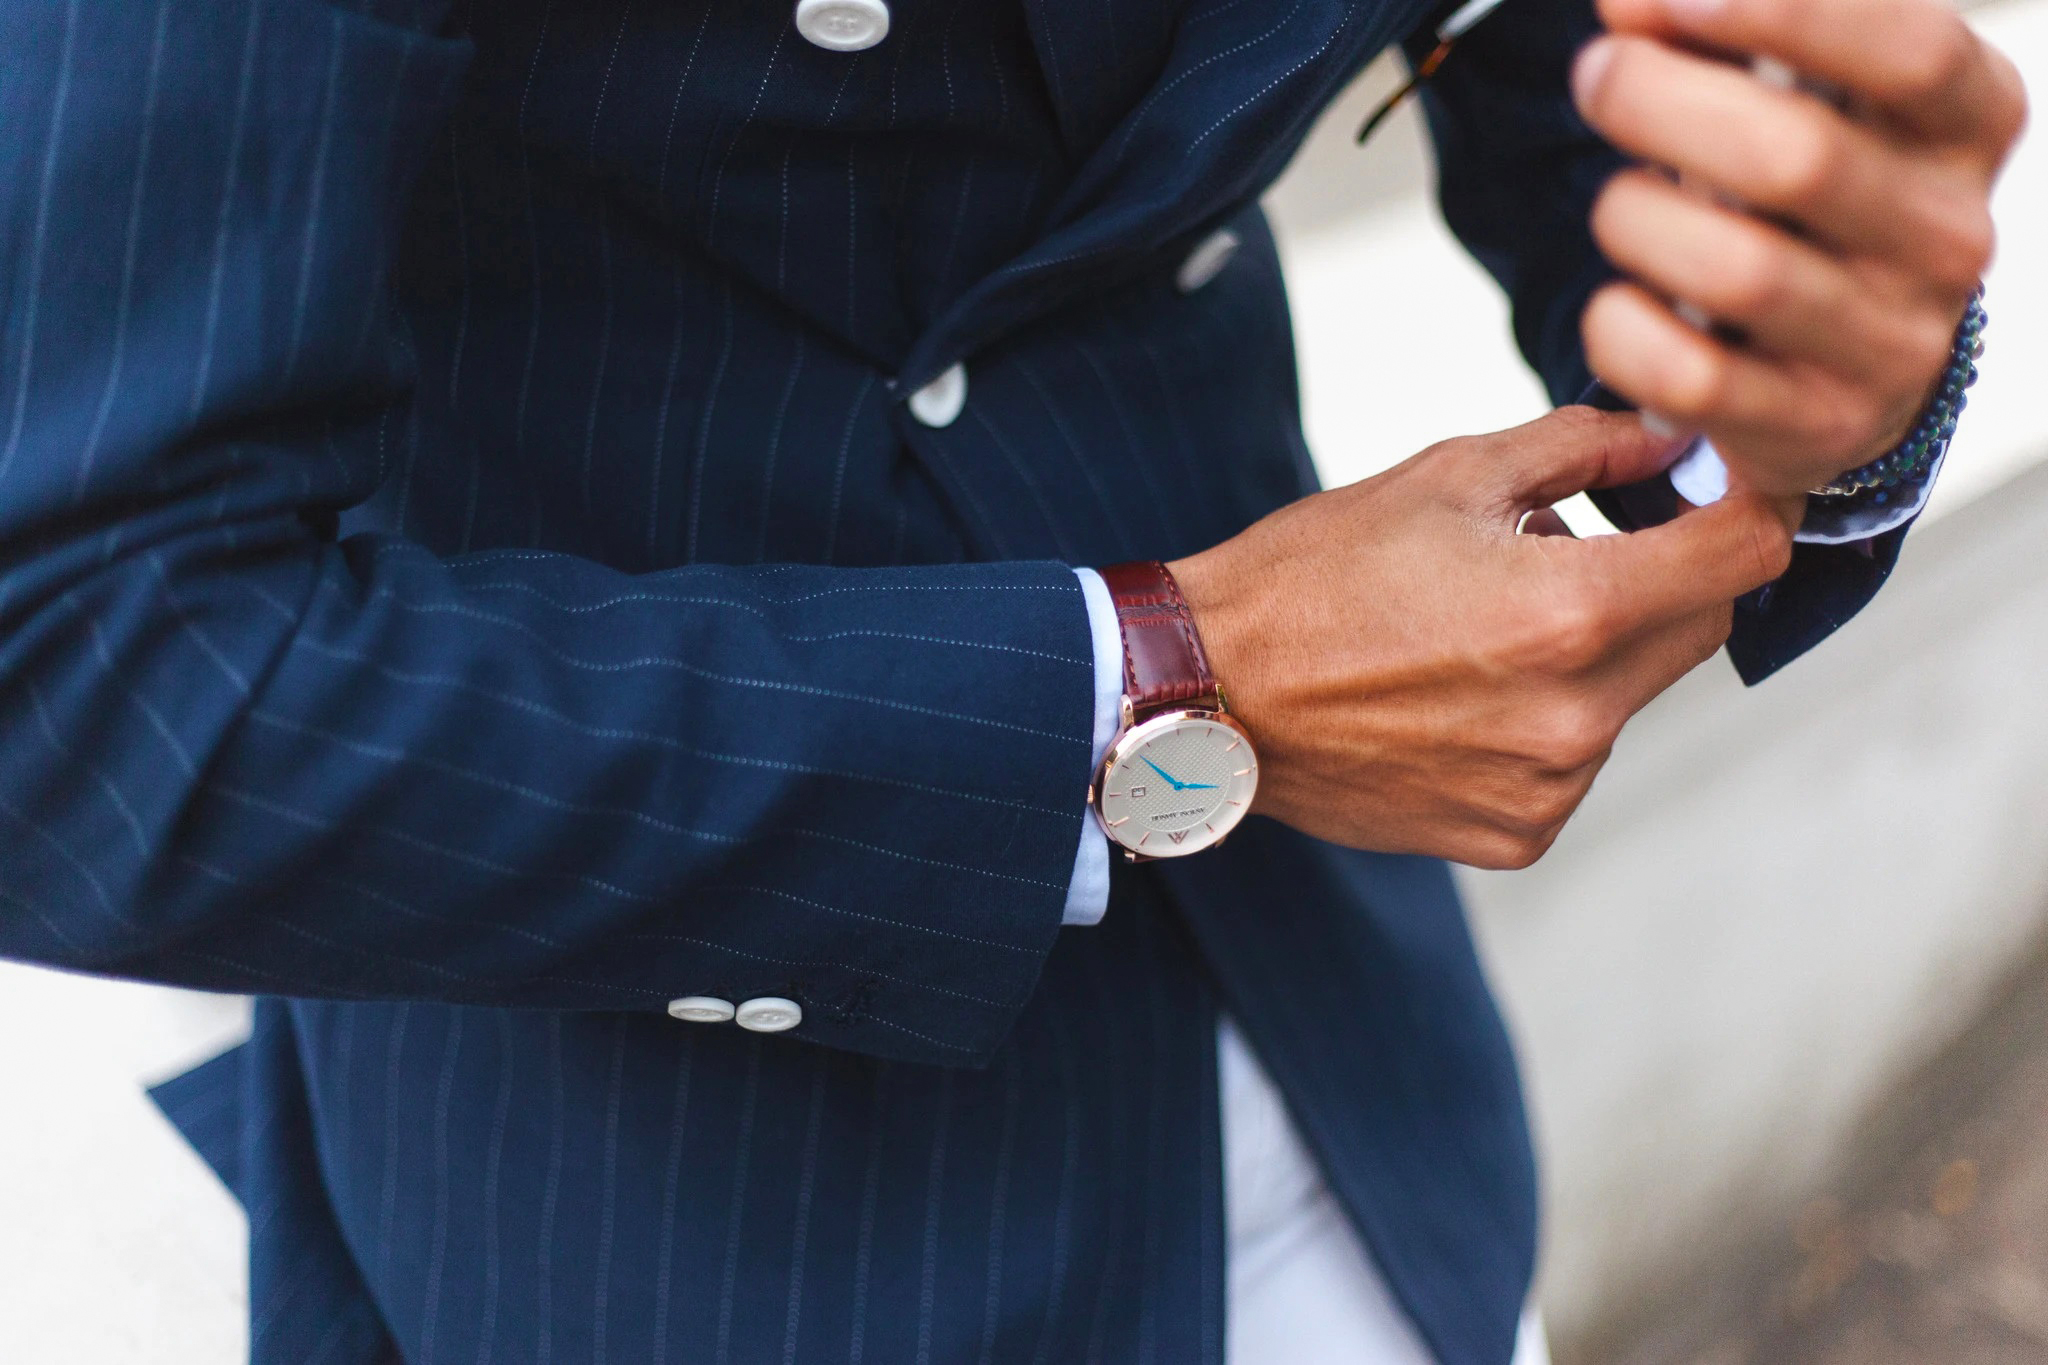 How To Match Your Watch to Your Suit